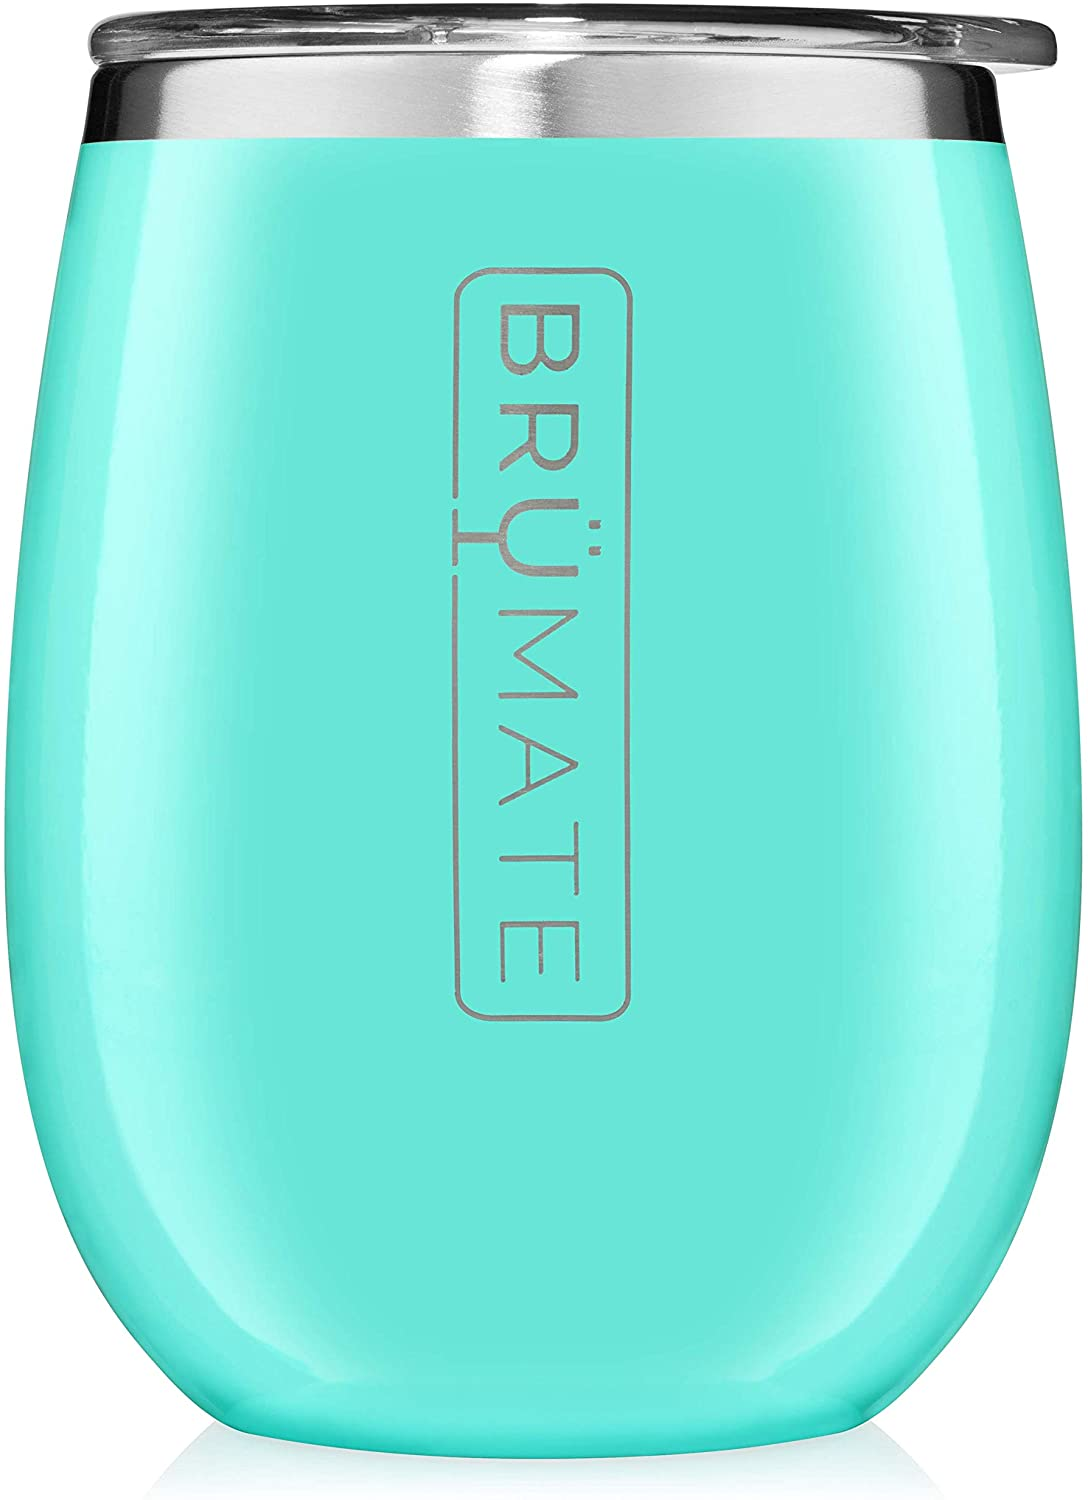 BrüMate Uncork'd XL 14oz Wine Glass Tumbler With Splash-proof Lid - Made With Vacuum Insulated Stainless Steel (Aqua)